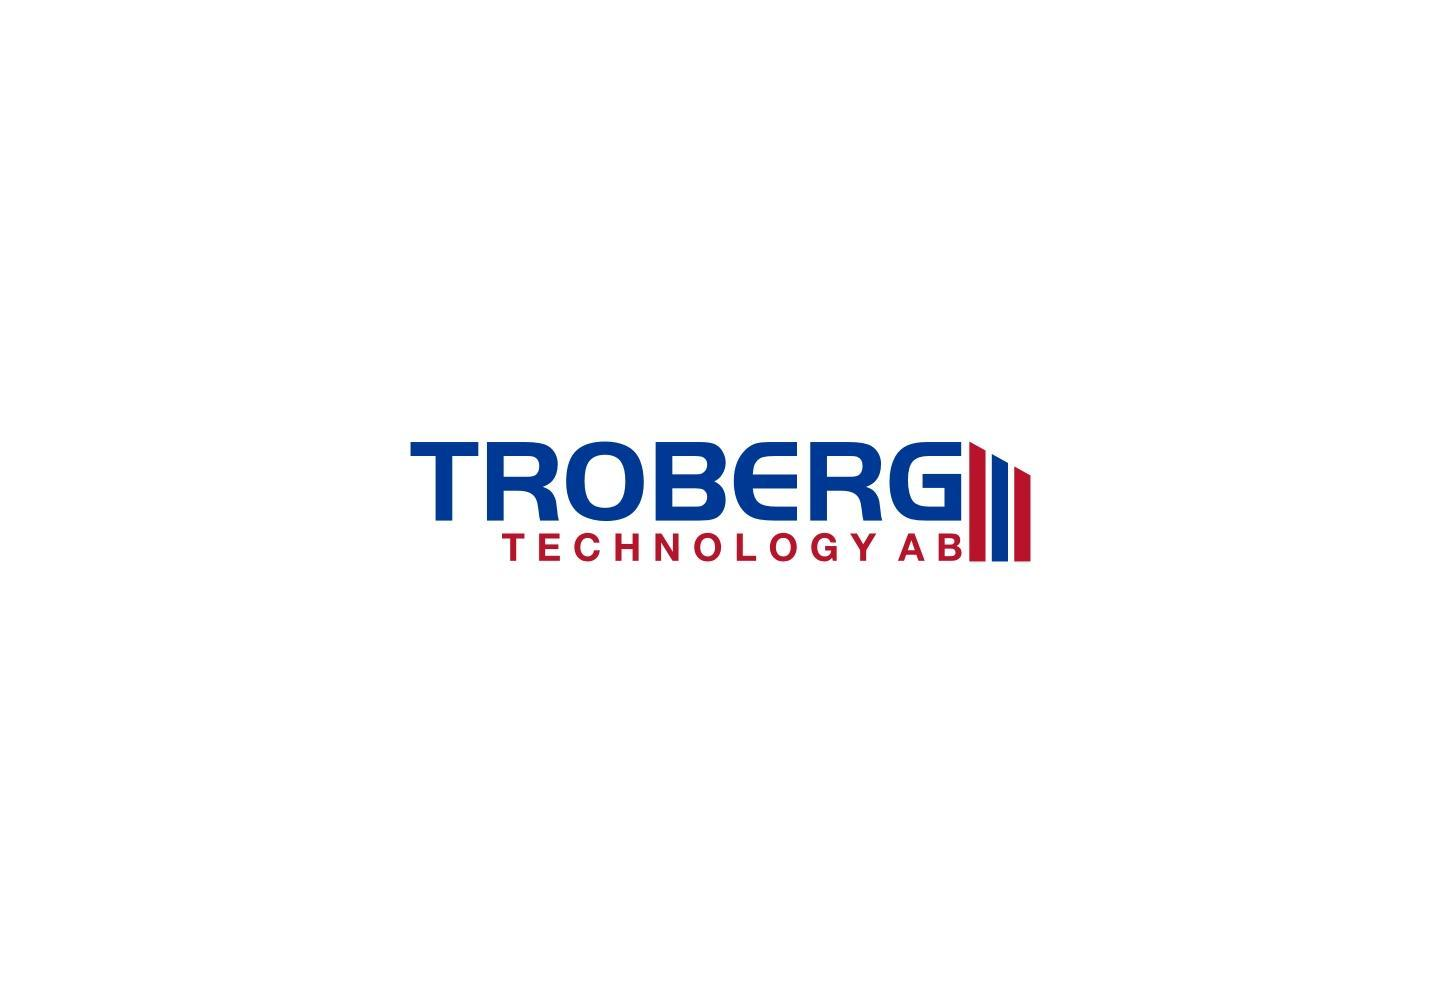 Troberg Technology AB